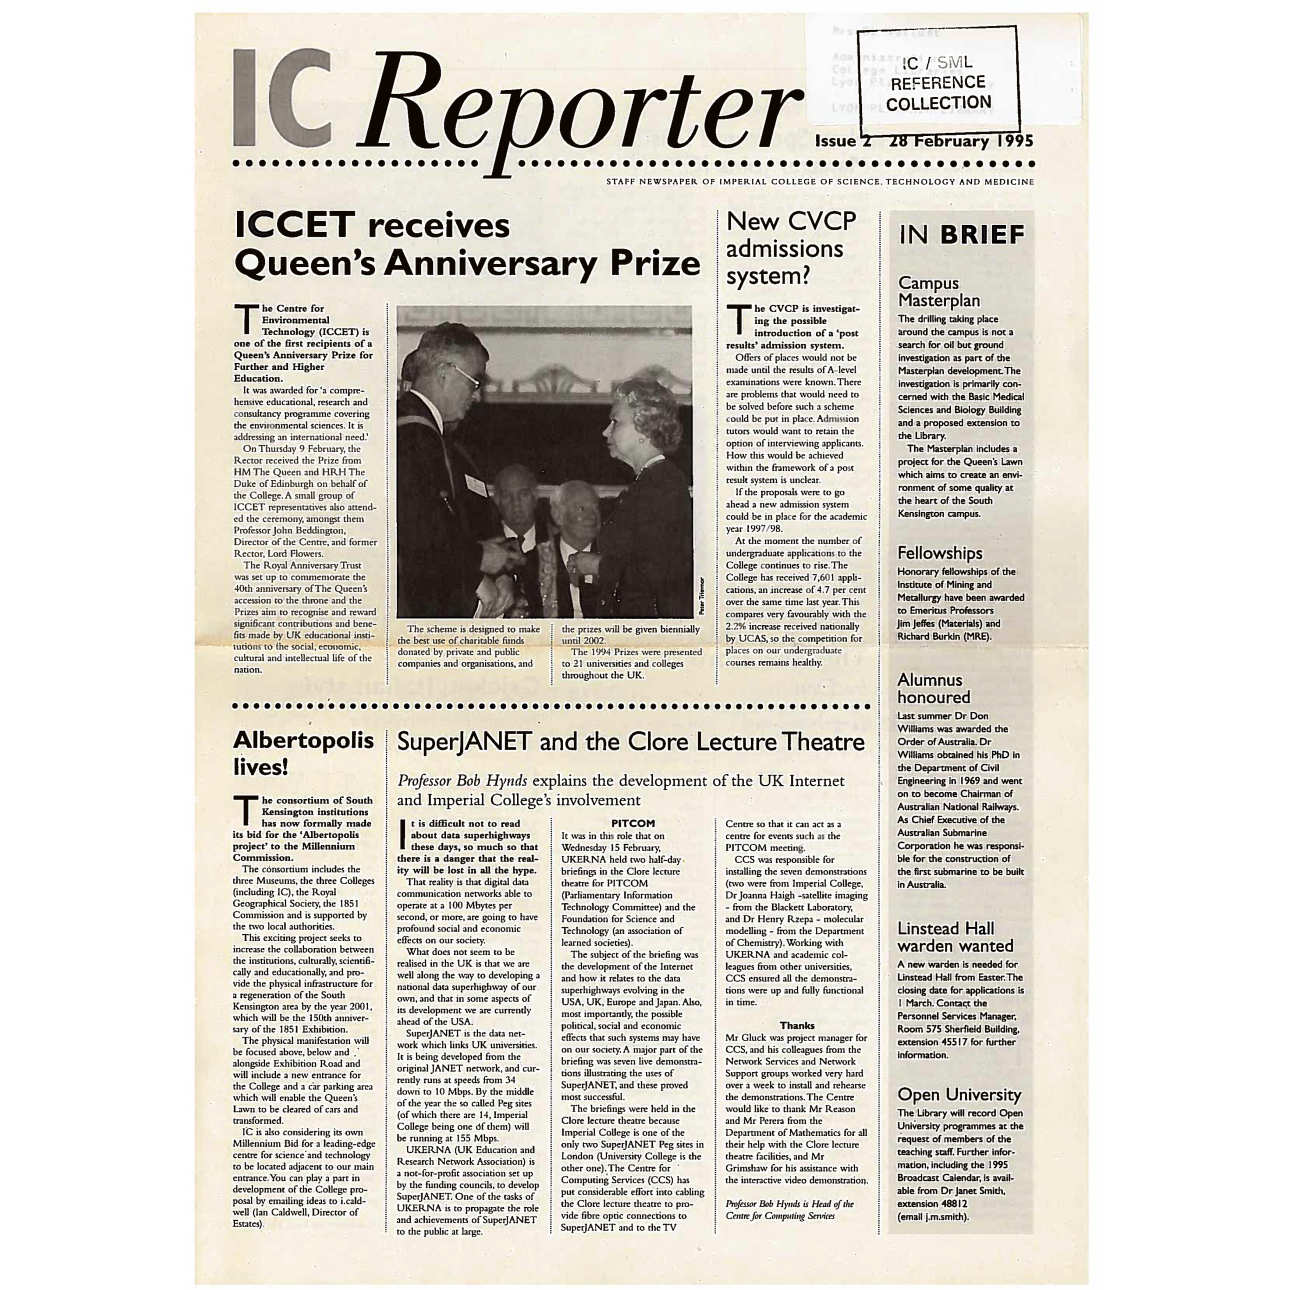 Issue 2, 28 February 1995